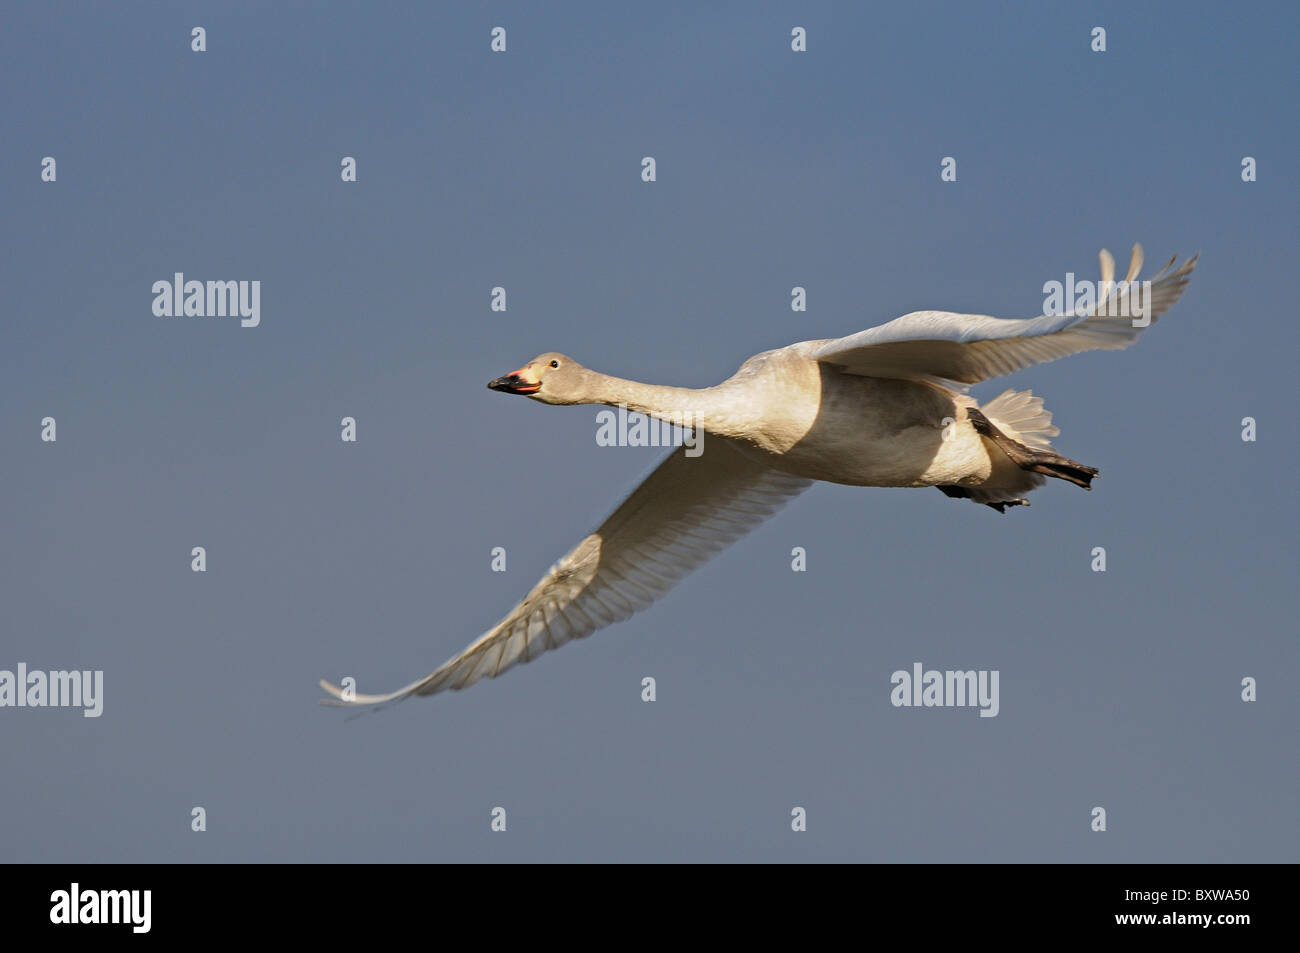 Bewick's Swan (Cygnus columbianus) juvenile in flight, Slimbridge, UK. Stock Photo